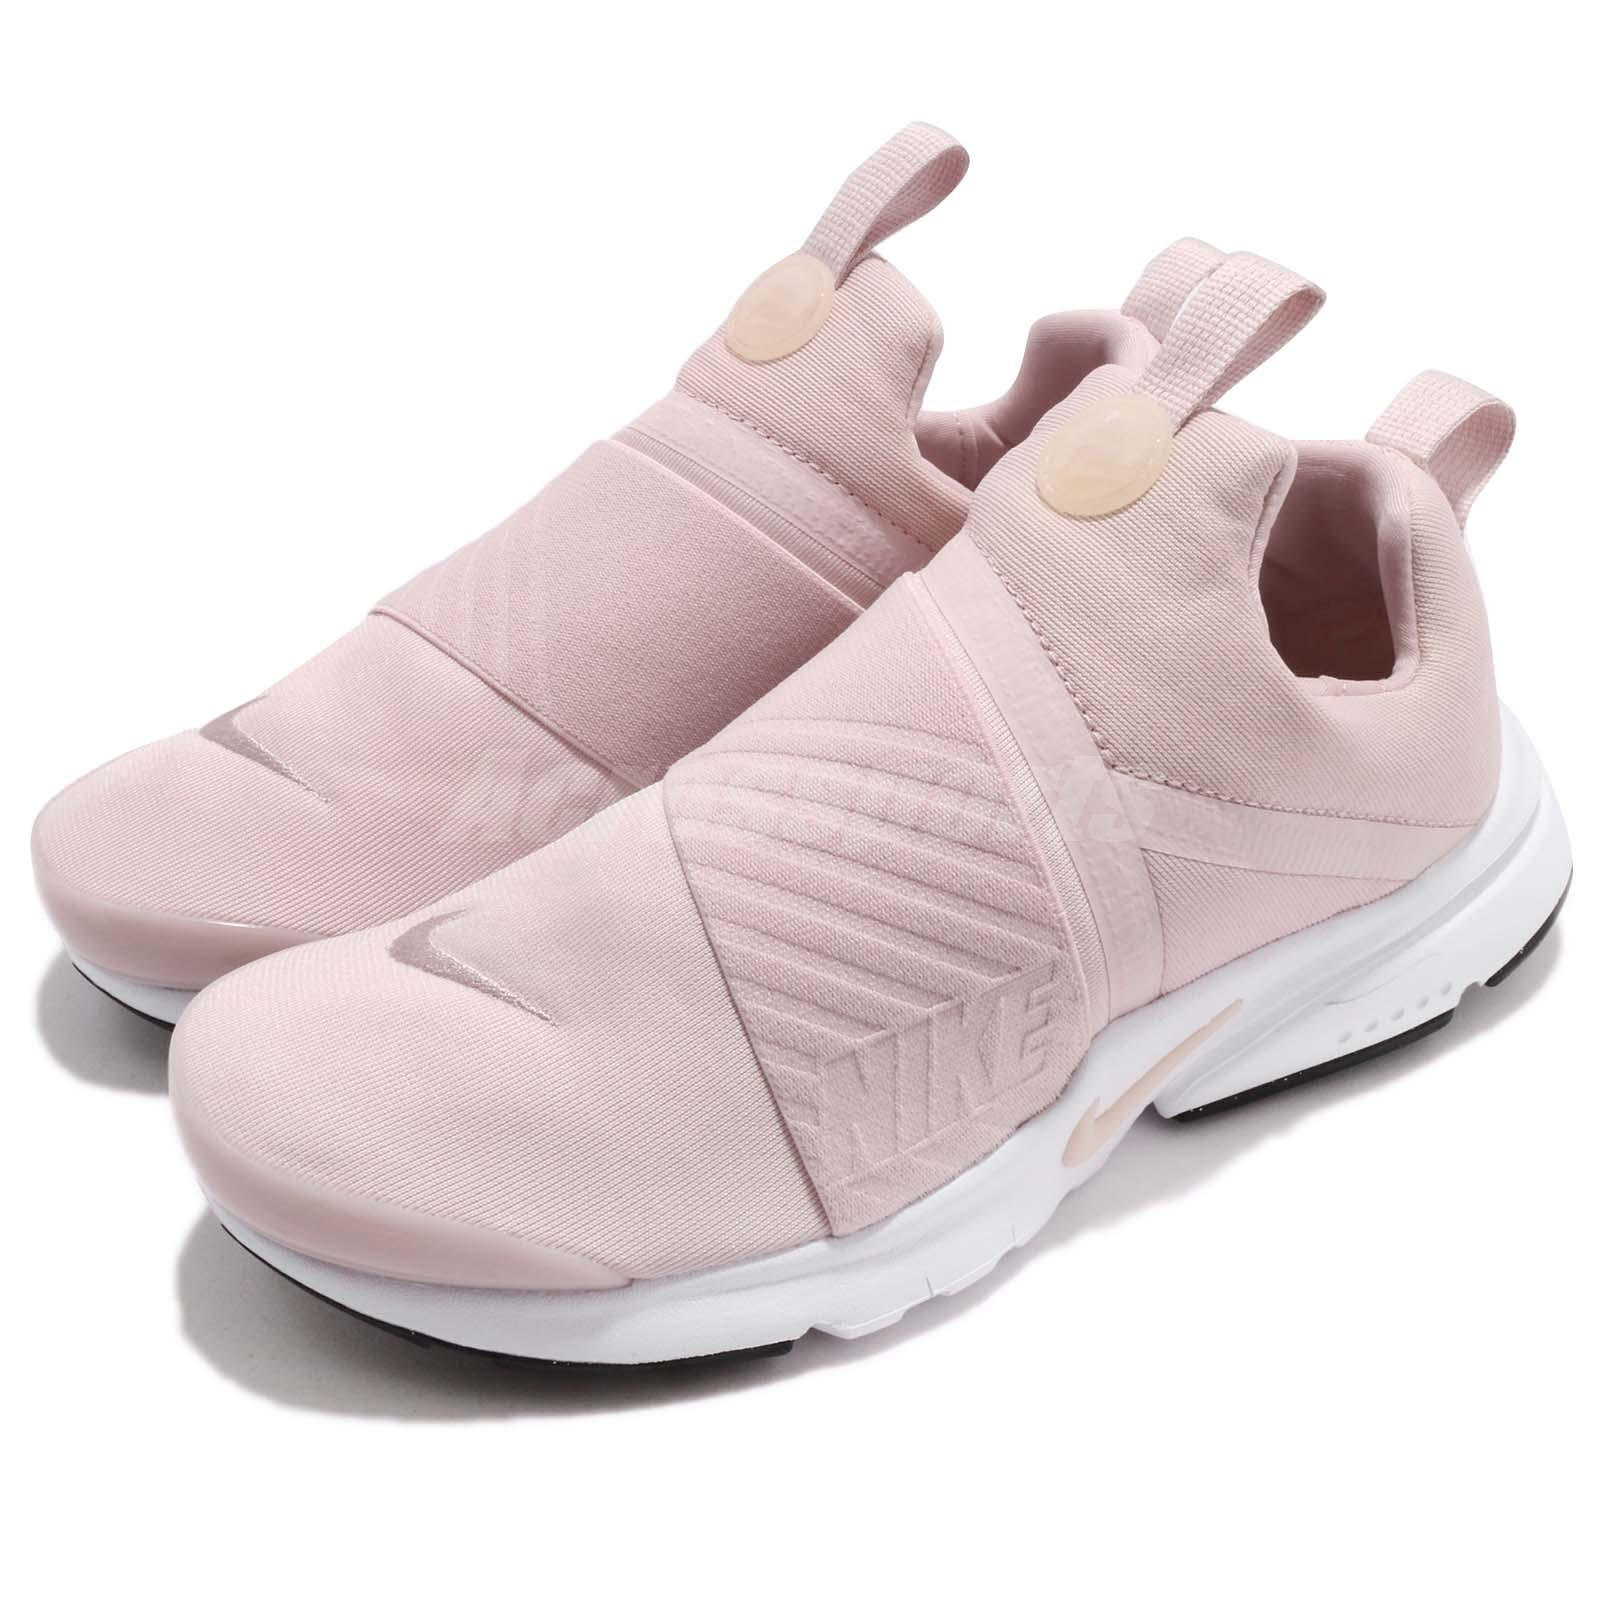 half off 4acd0 46536 Details about Nike Presto Extreme GS Barely Rose Pink White Kids Women  Running Shoe 870022-601